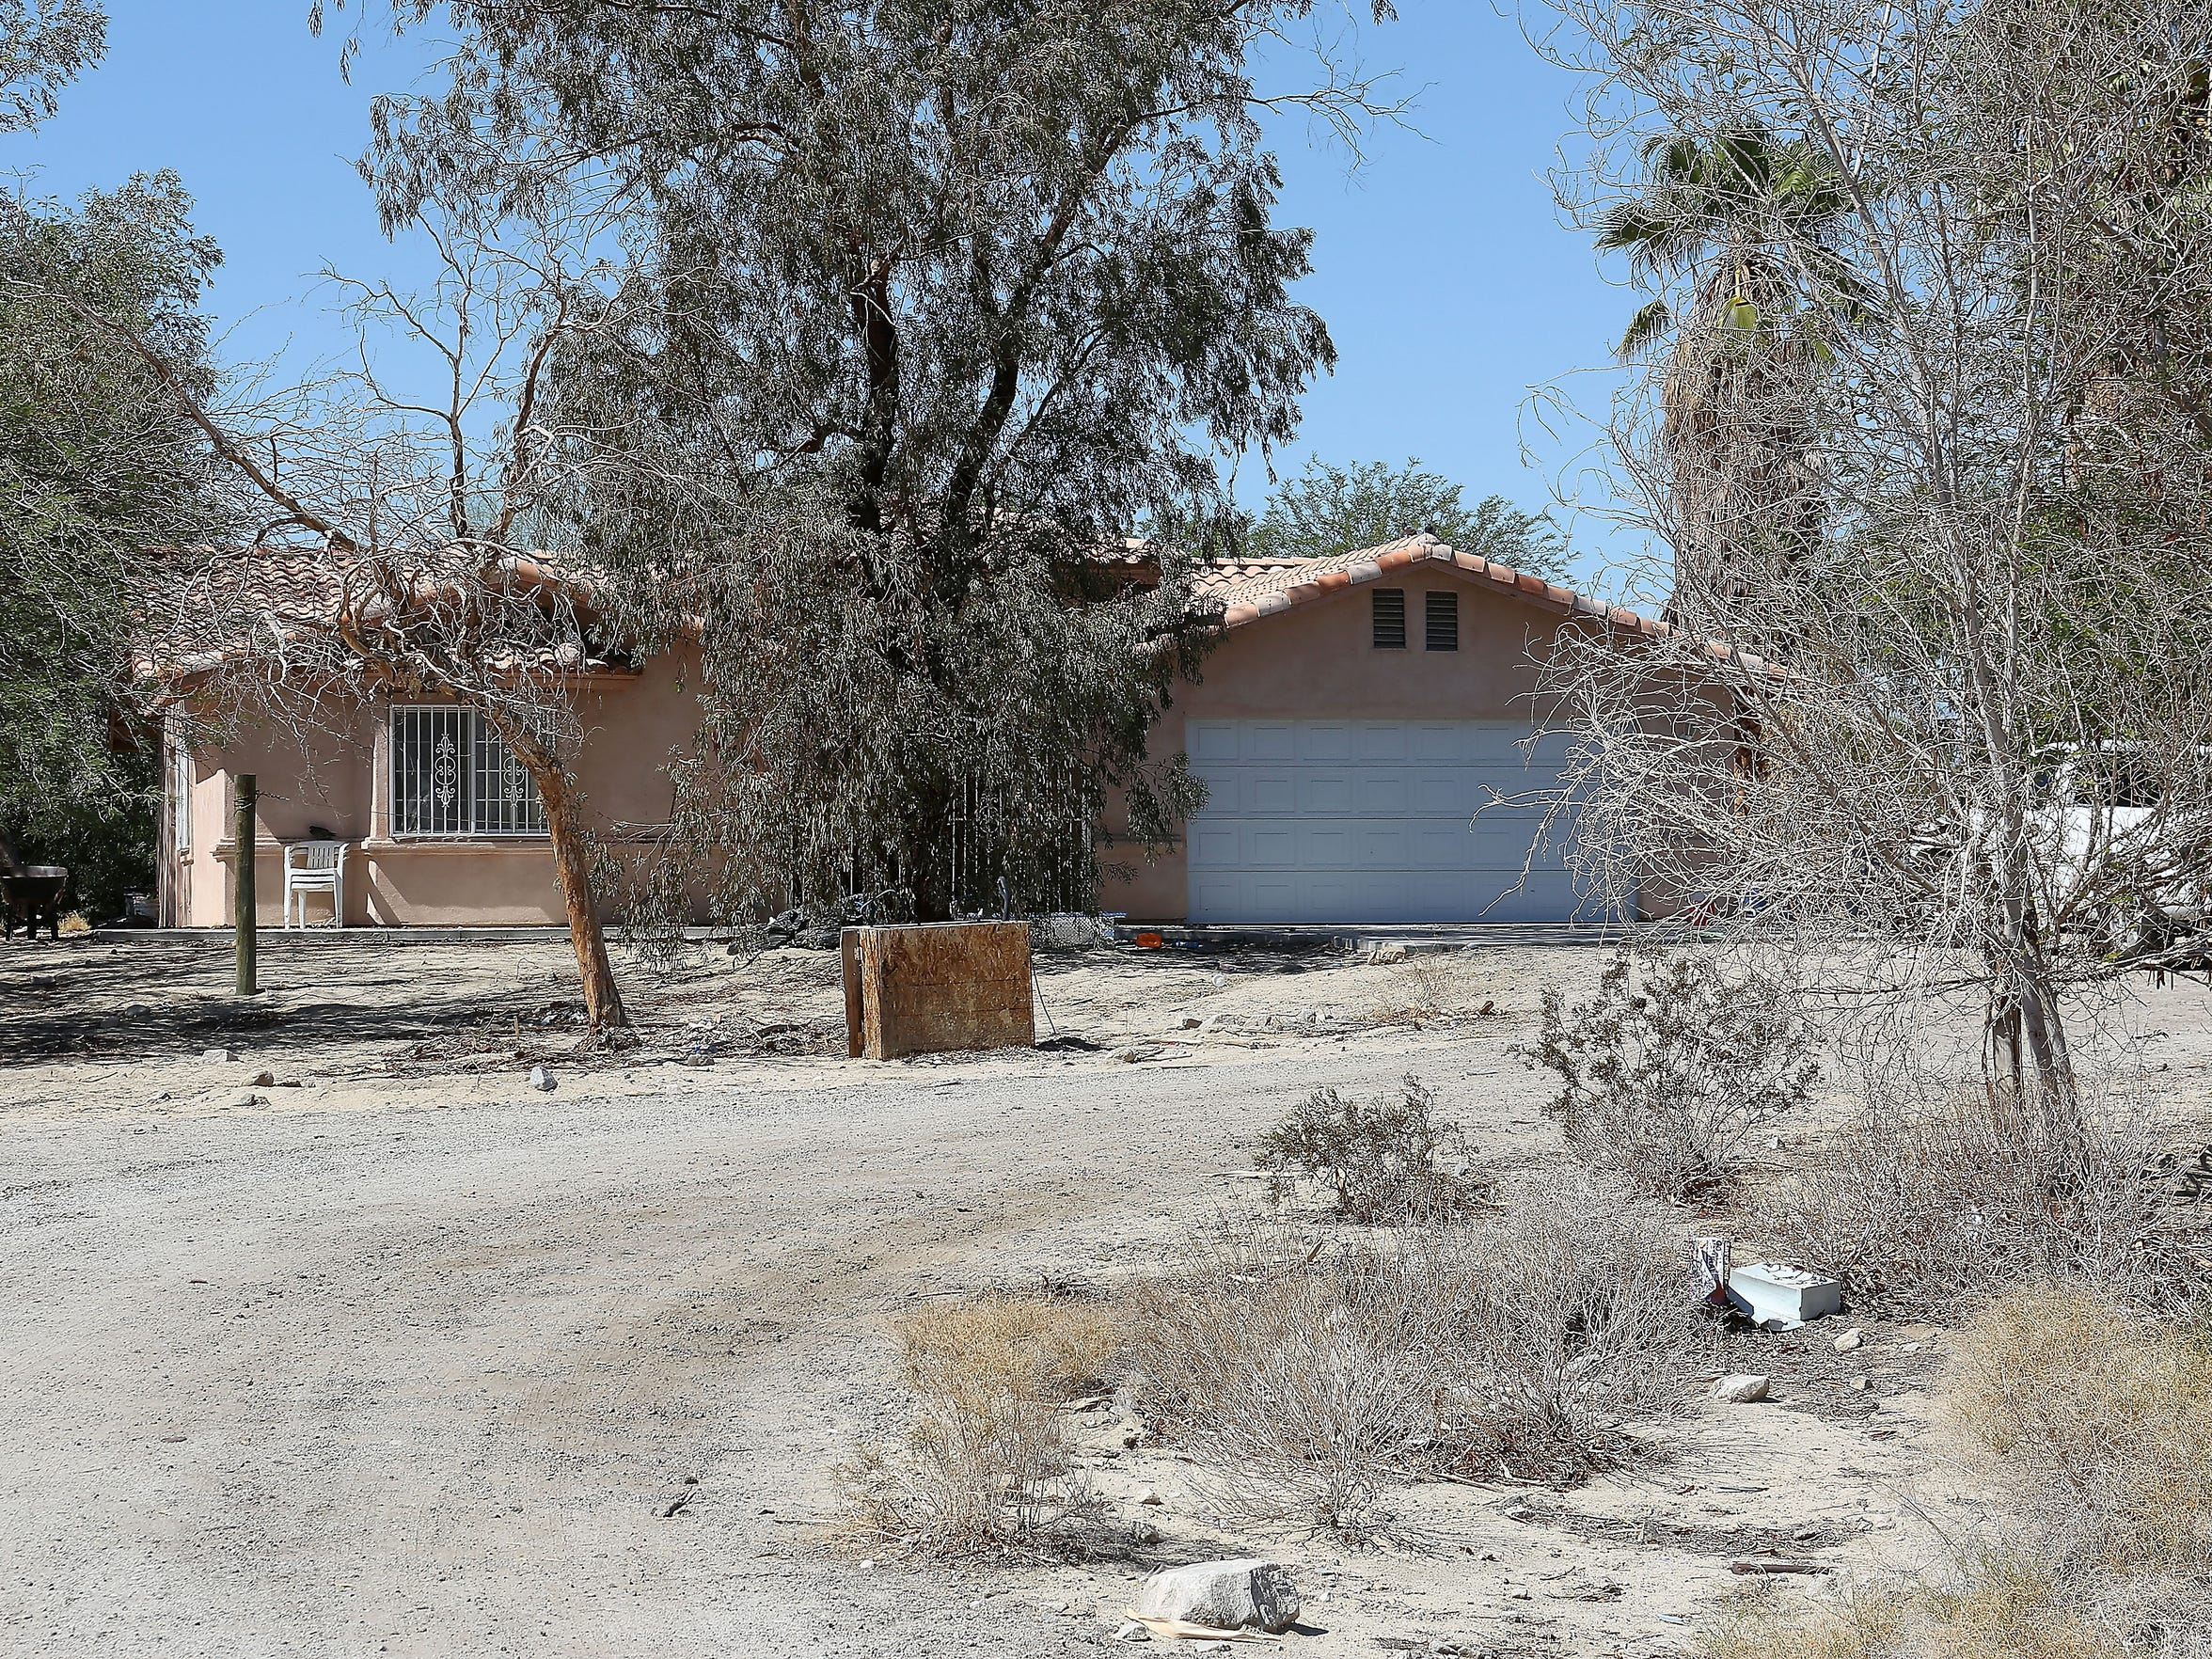 This unassuming home in a remote area of the Indio Hills was used as a stash house by drug smugglers and uncovered by the Drug Enforcement Agency in 2011.